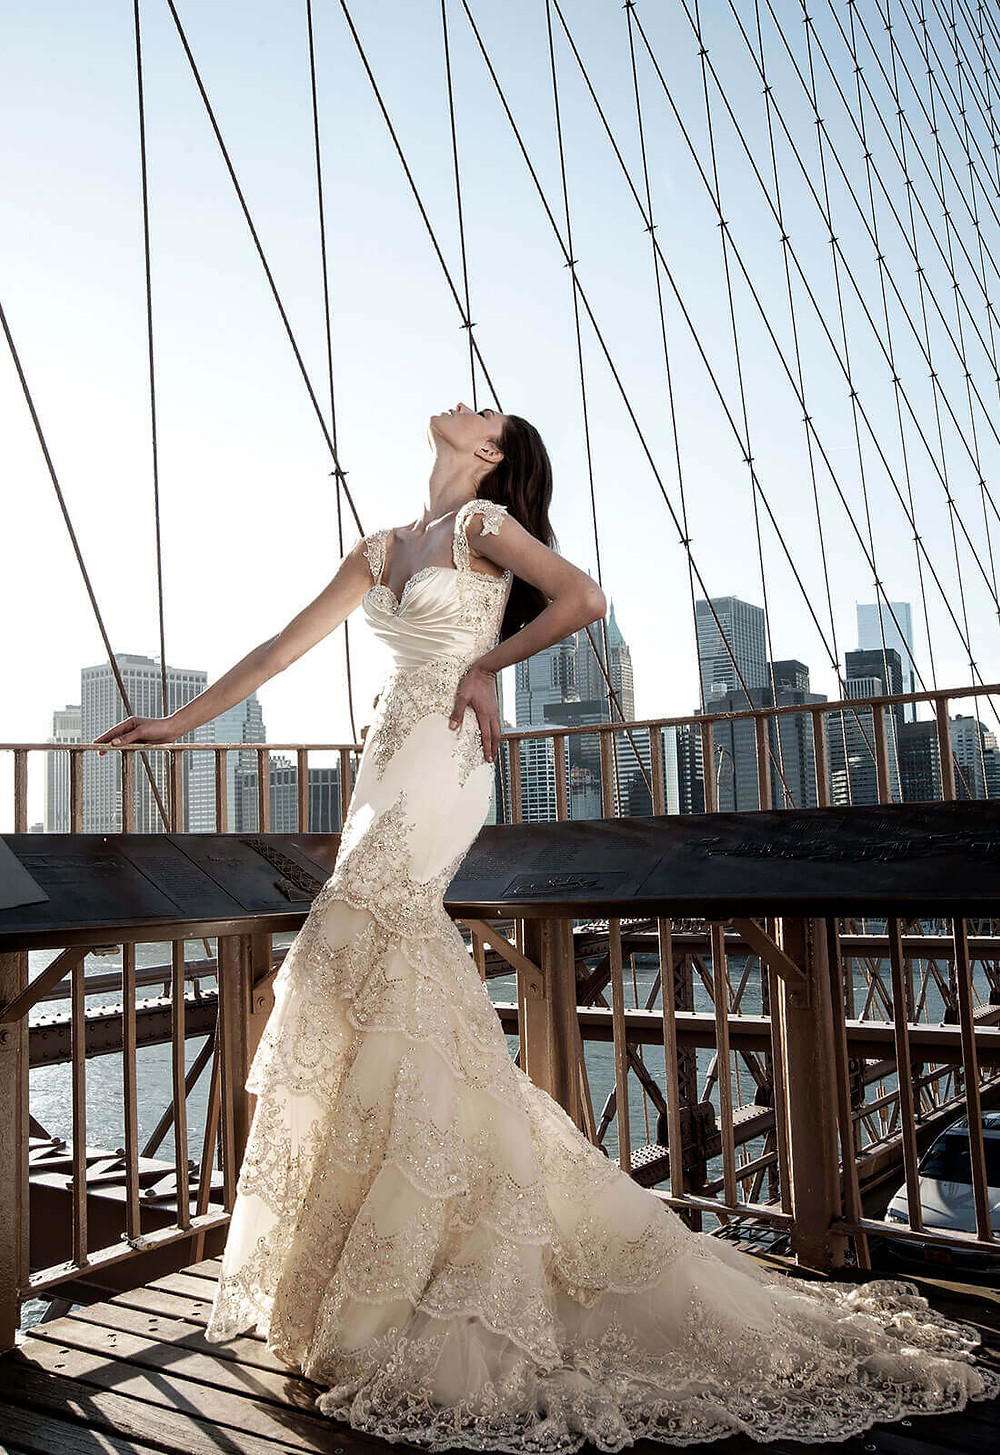 A satin, champagne mermaid wedding dress with lace and straps